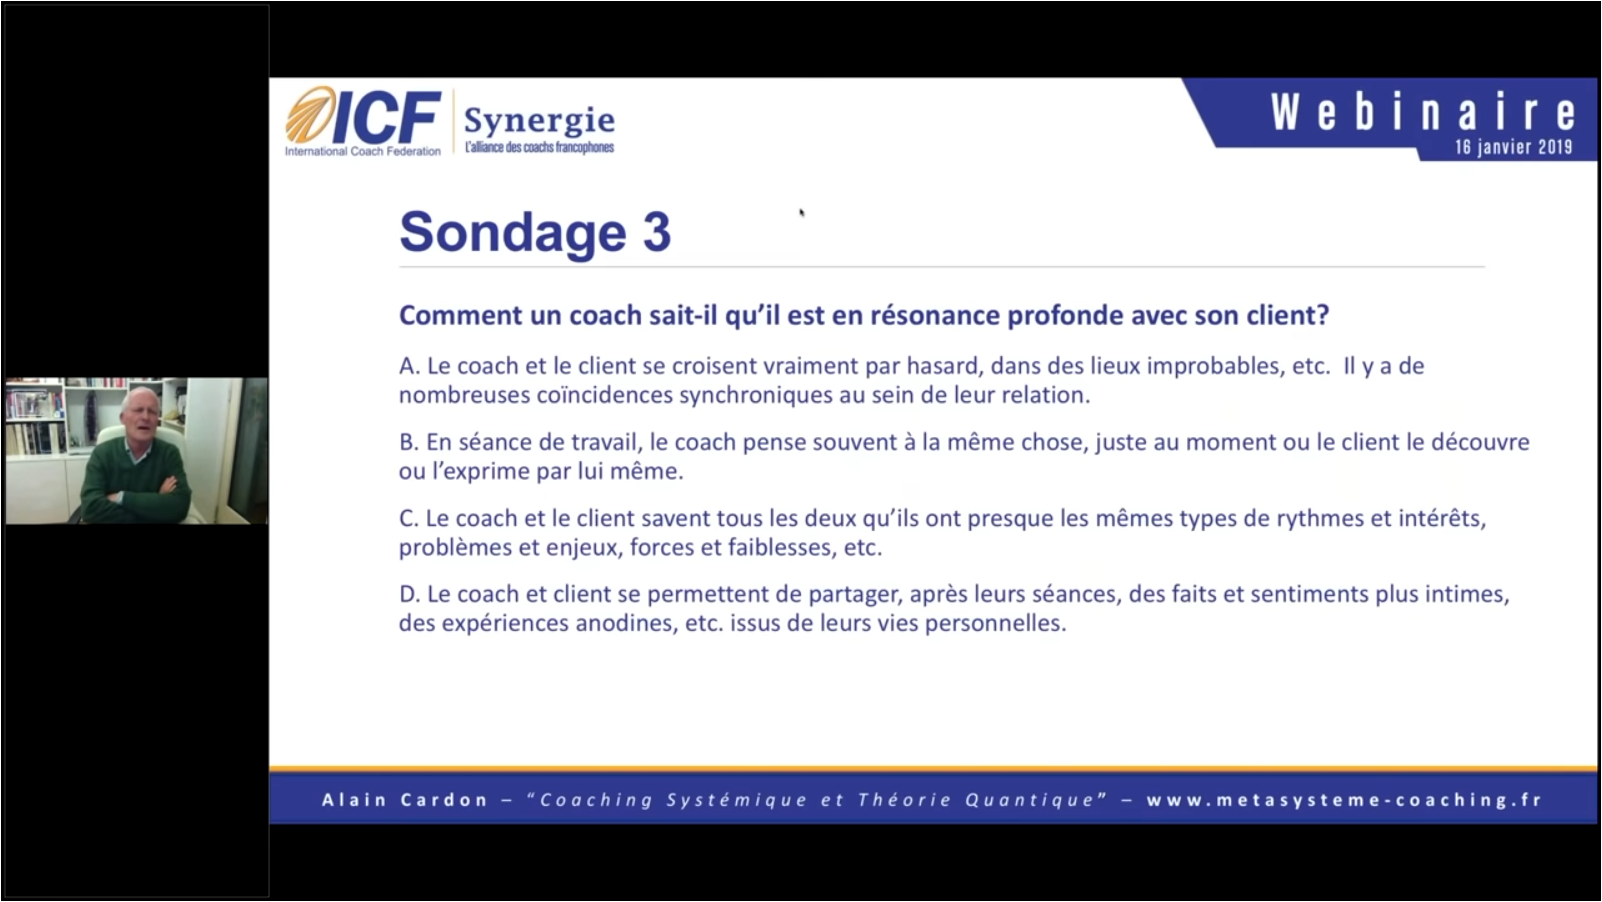 CARDON-COACHING-SYSTEMIQUE-5.png